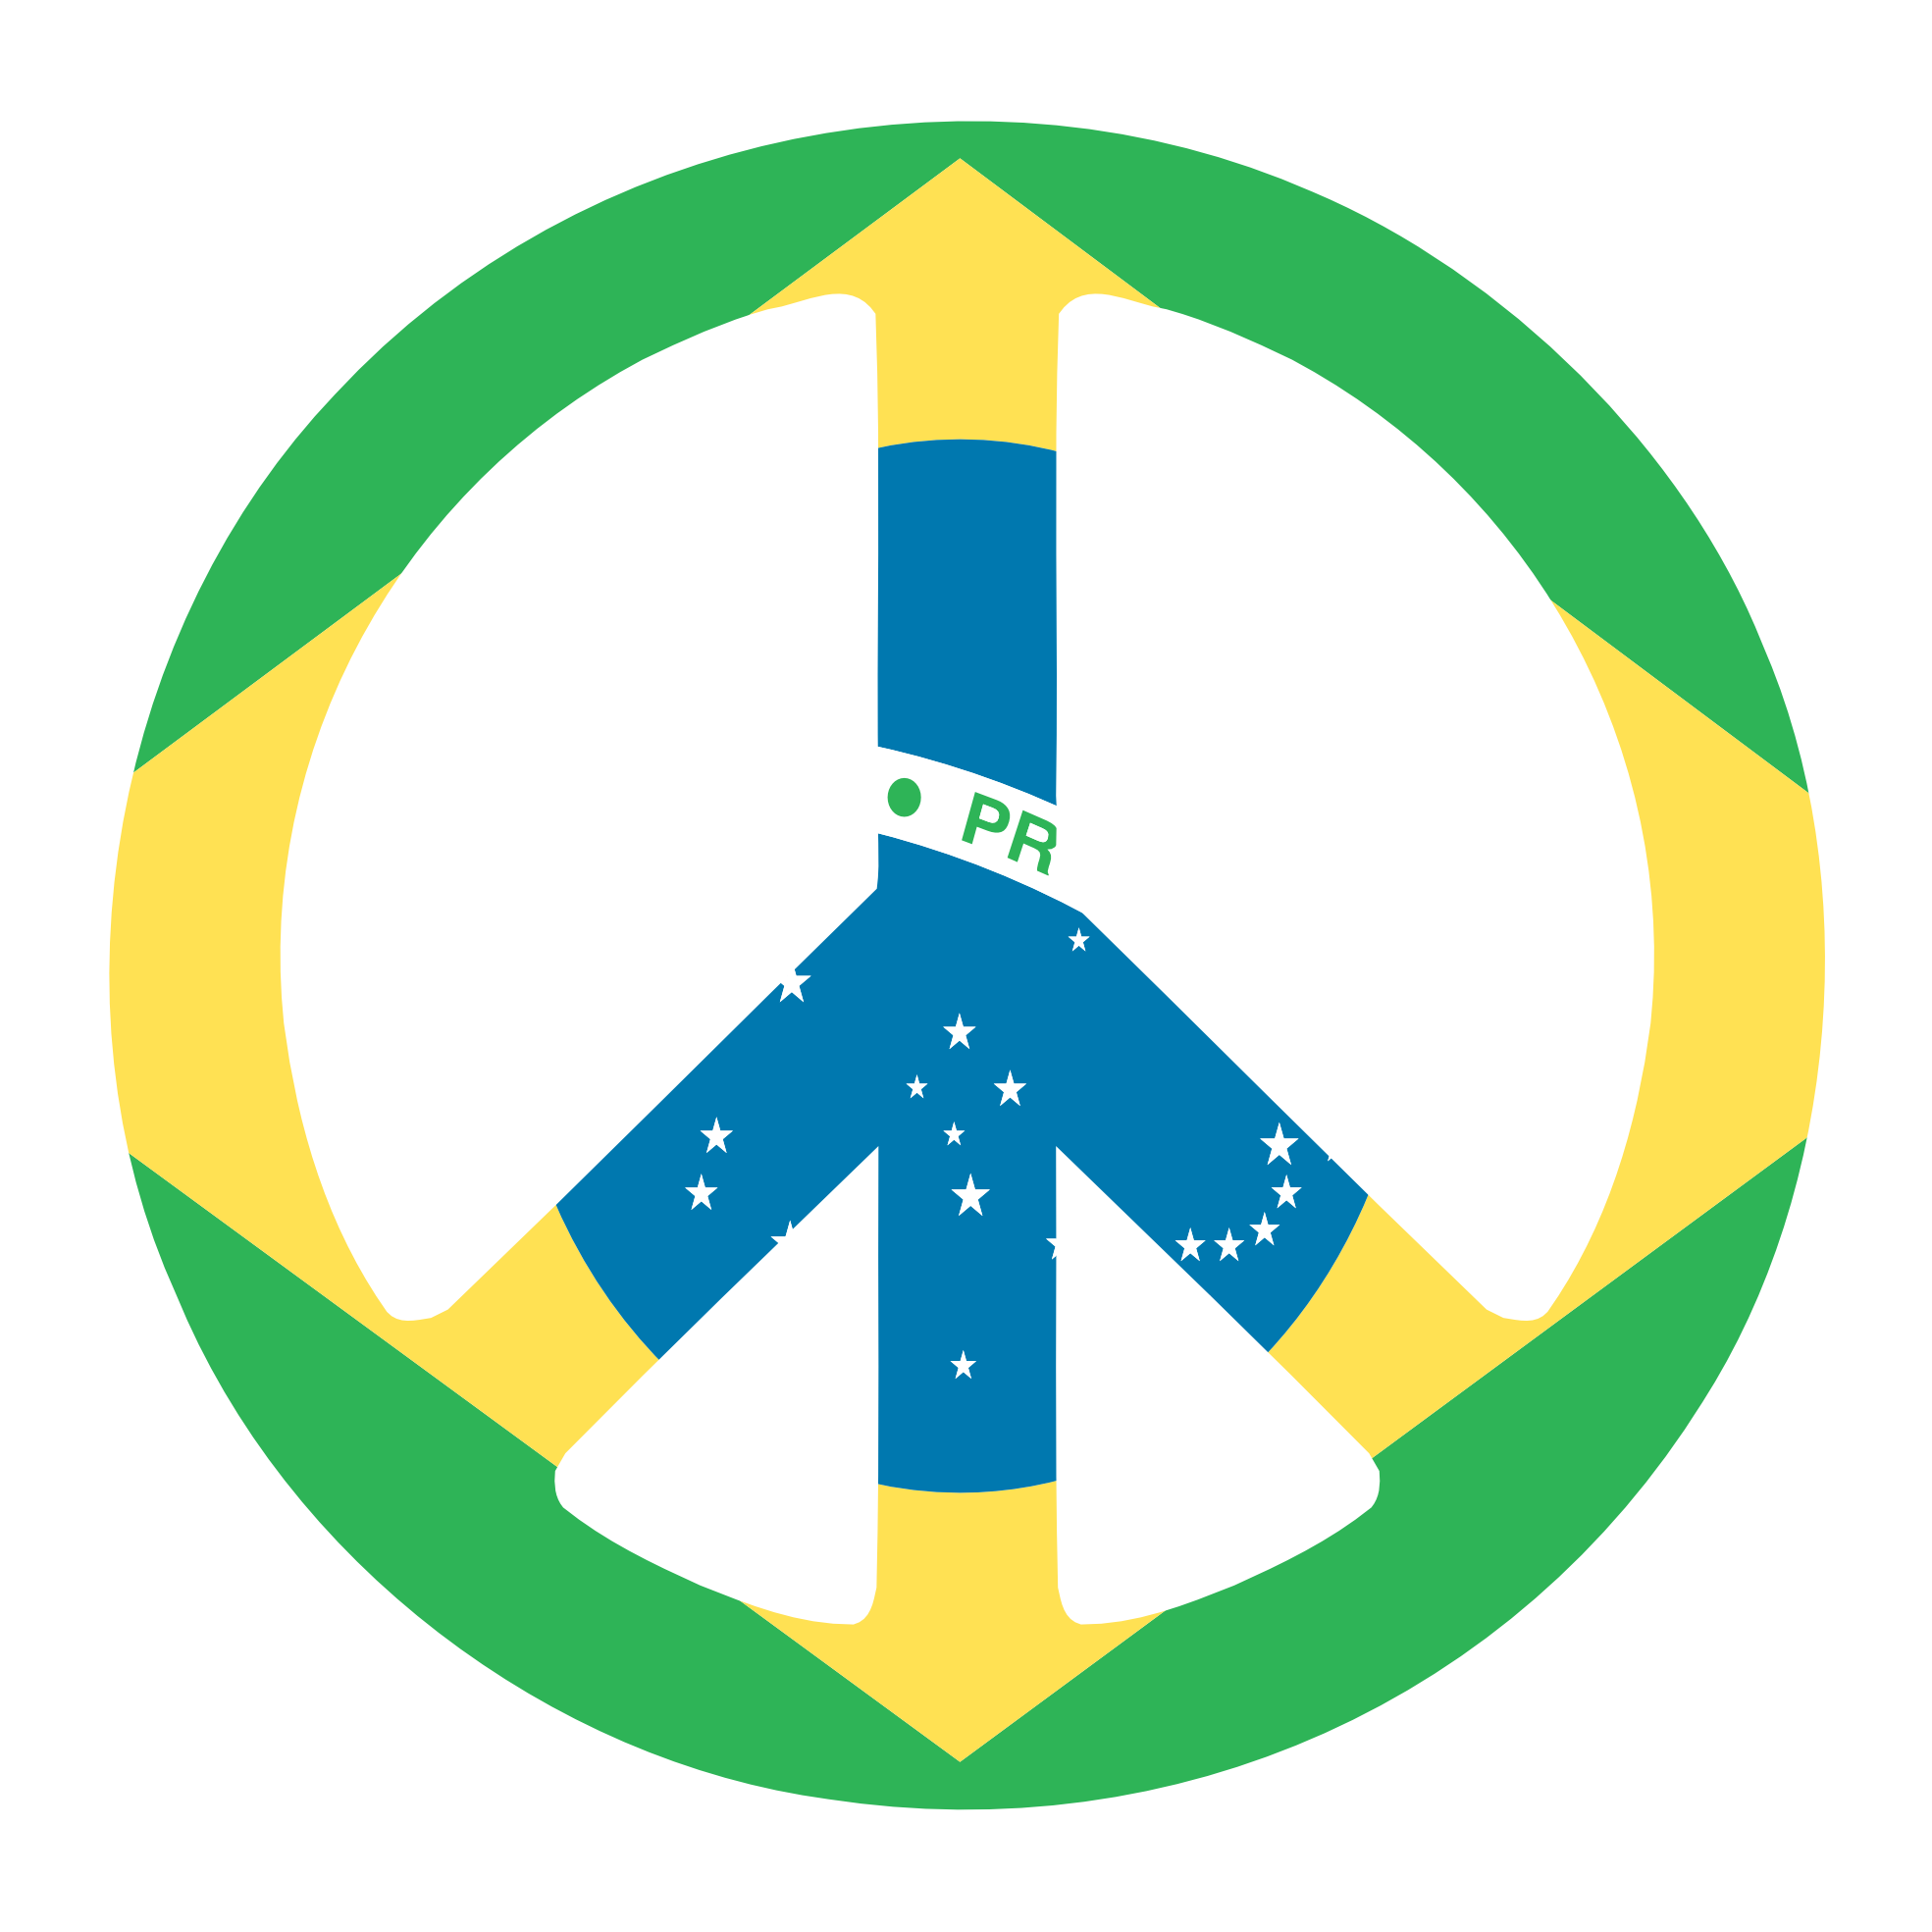 Peace clipart africa Download Clip Free Symbol Art